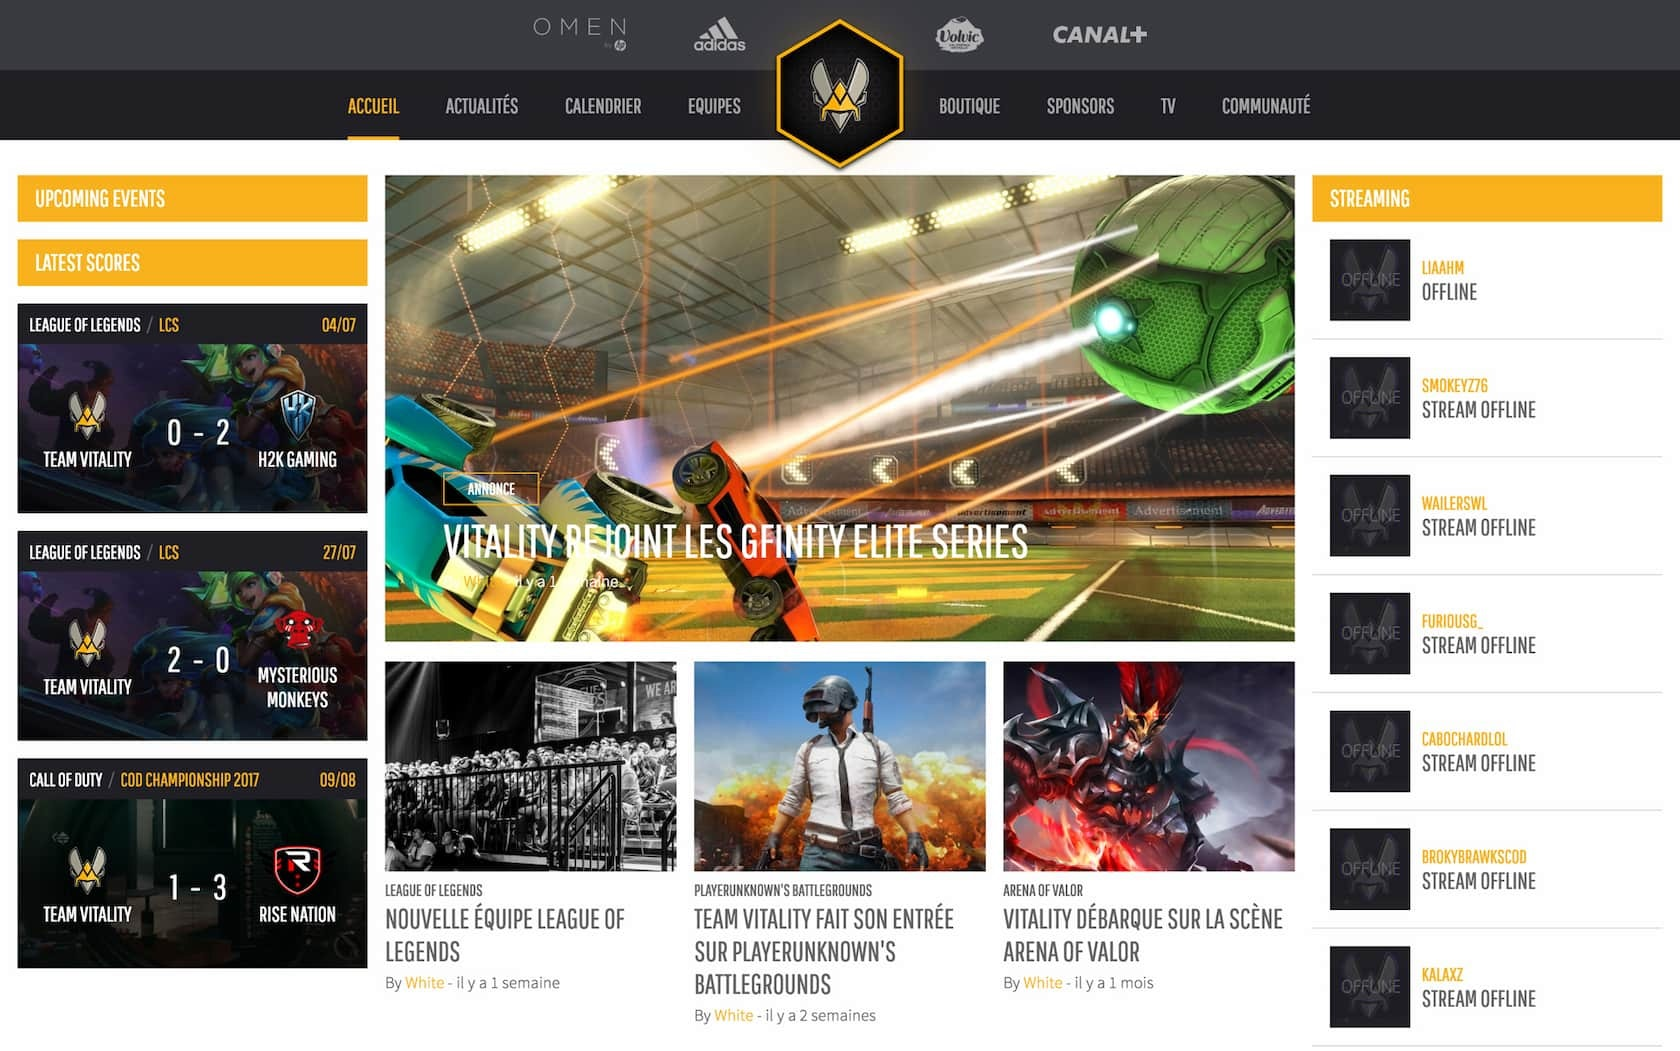 Team Vitality website, vitality.gg, onligne from 2018 to late 2019